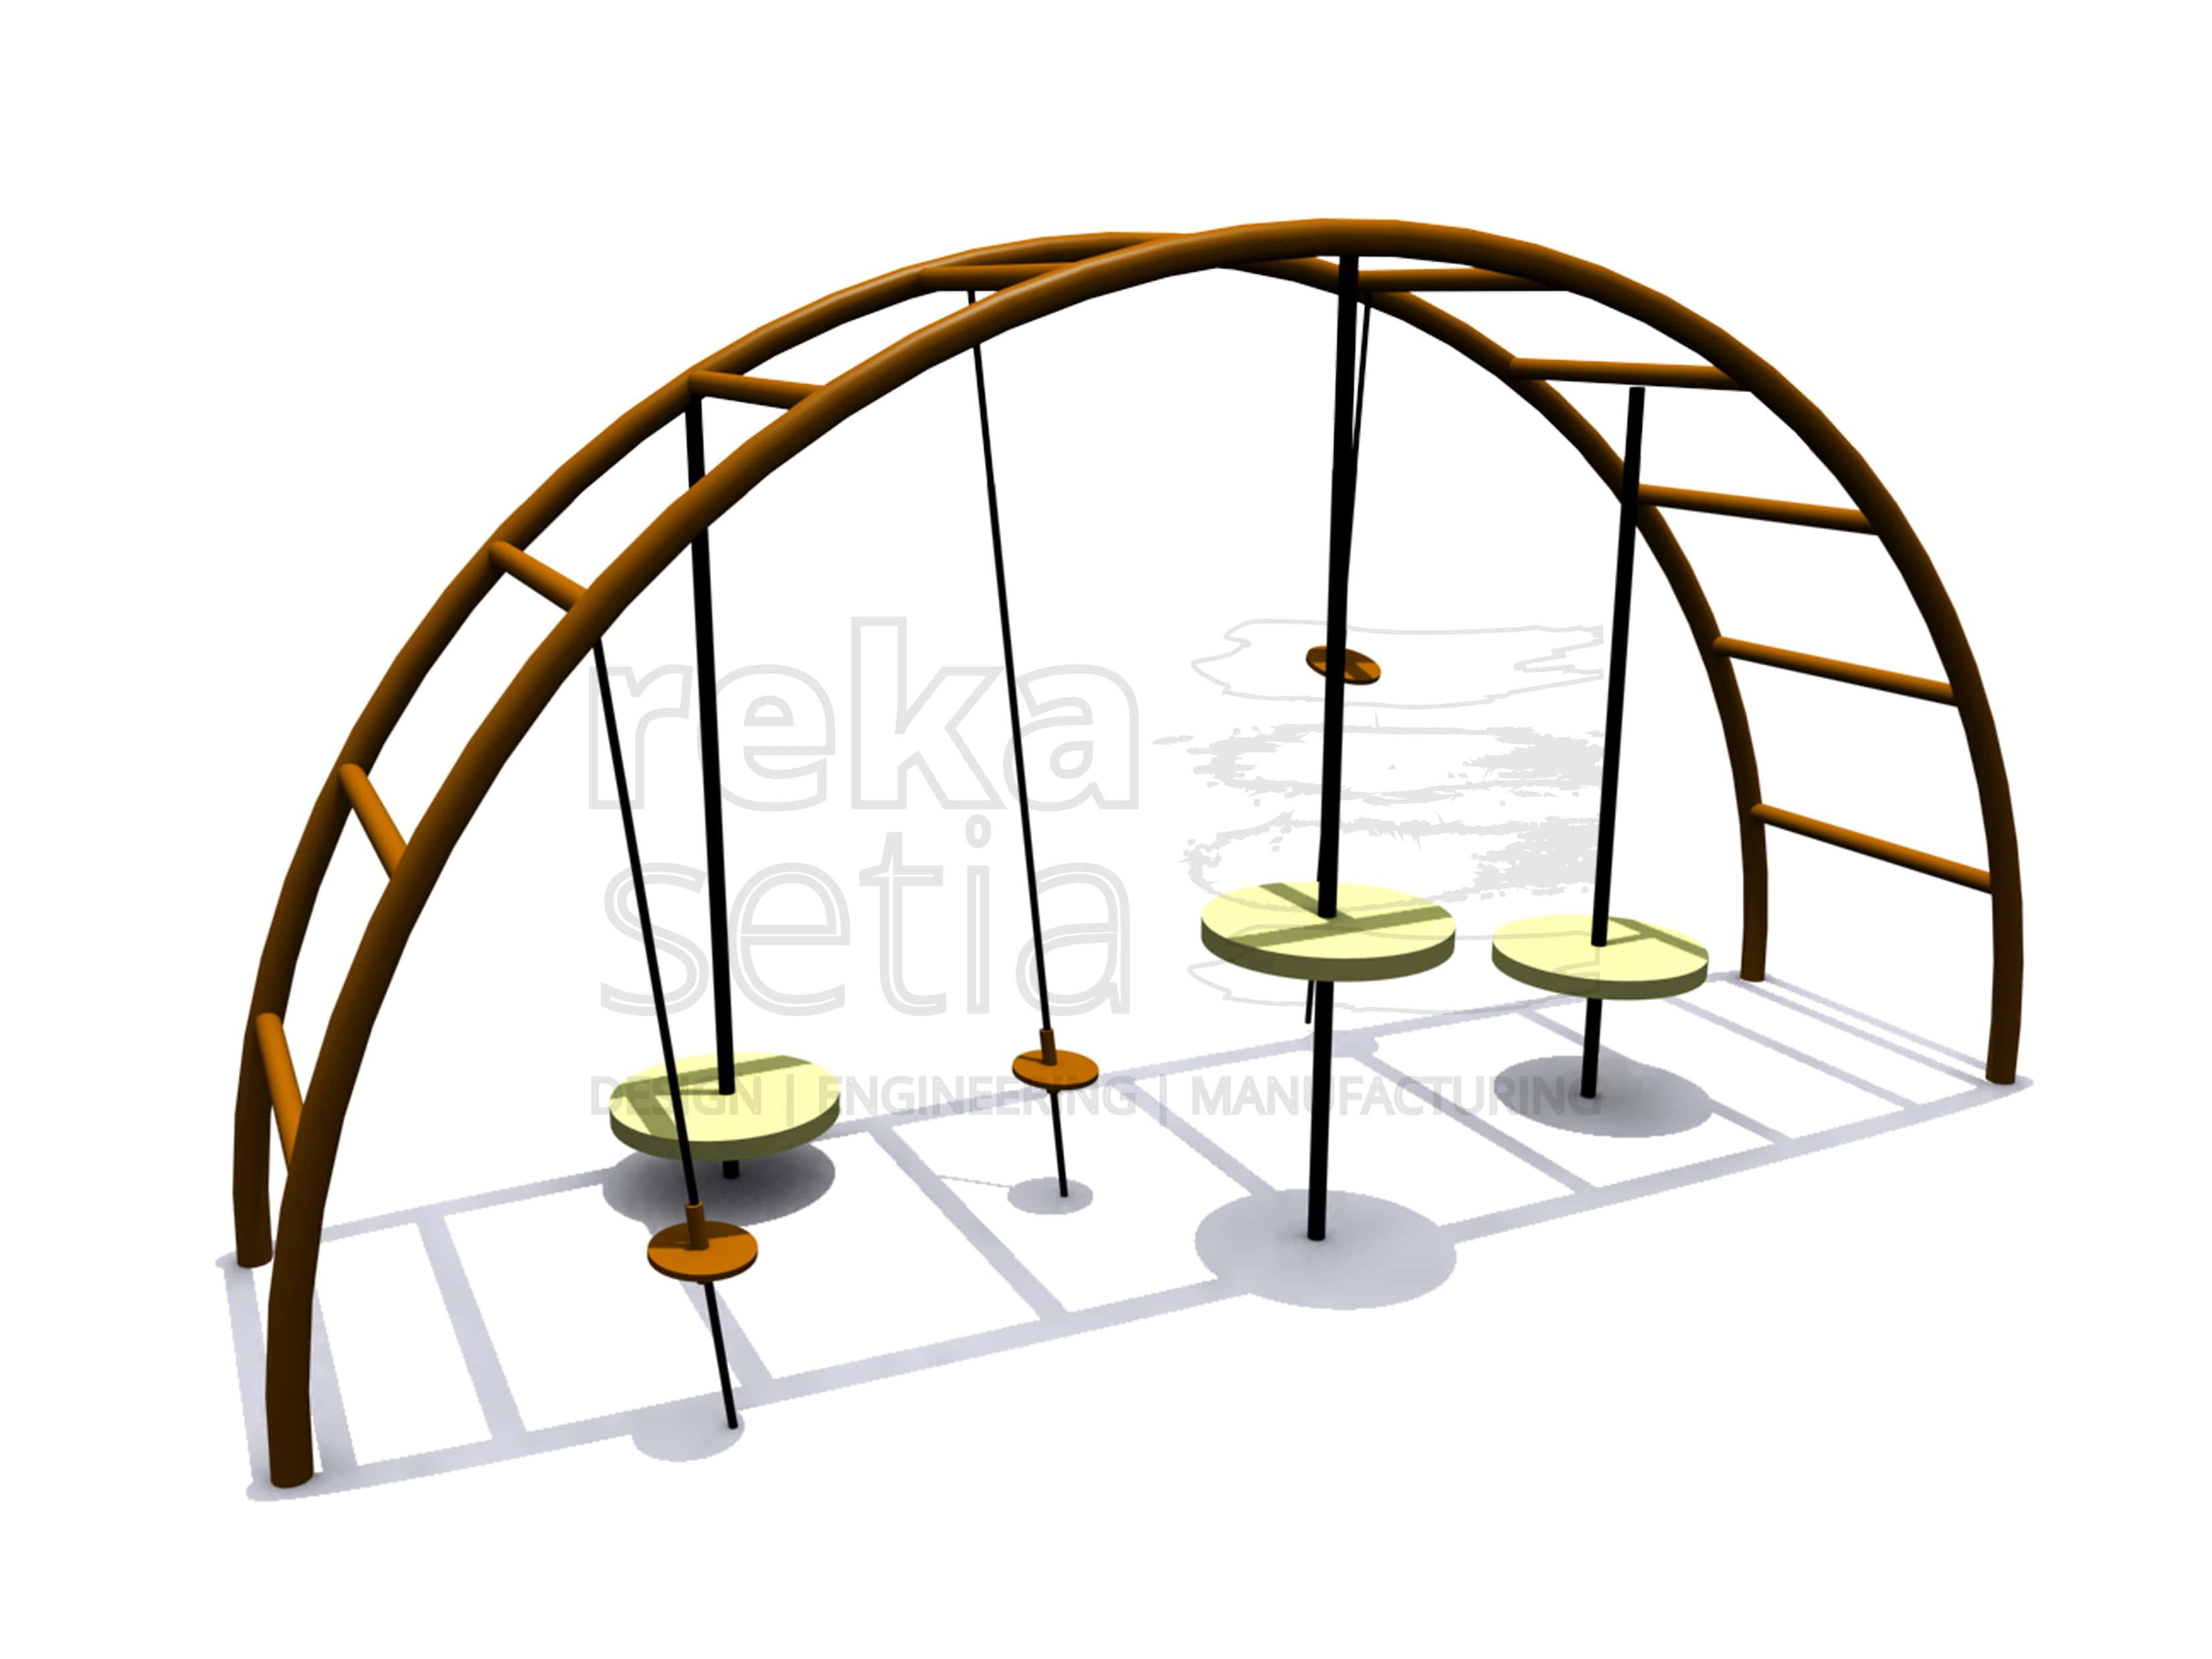 Arch Climbers clipart #20, Download drawings